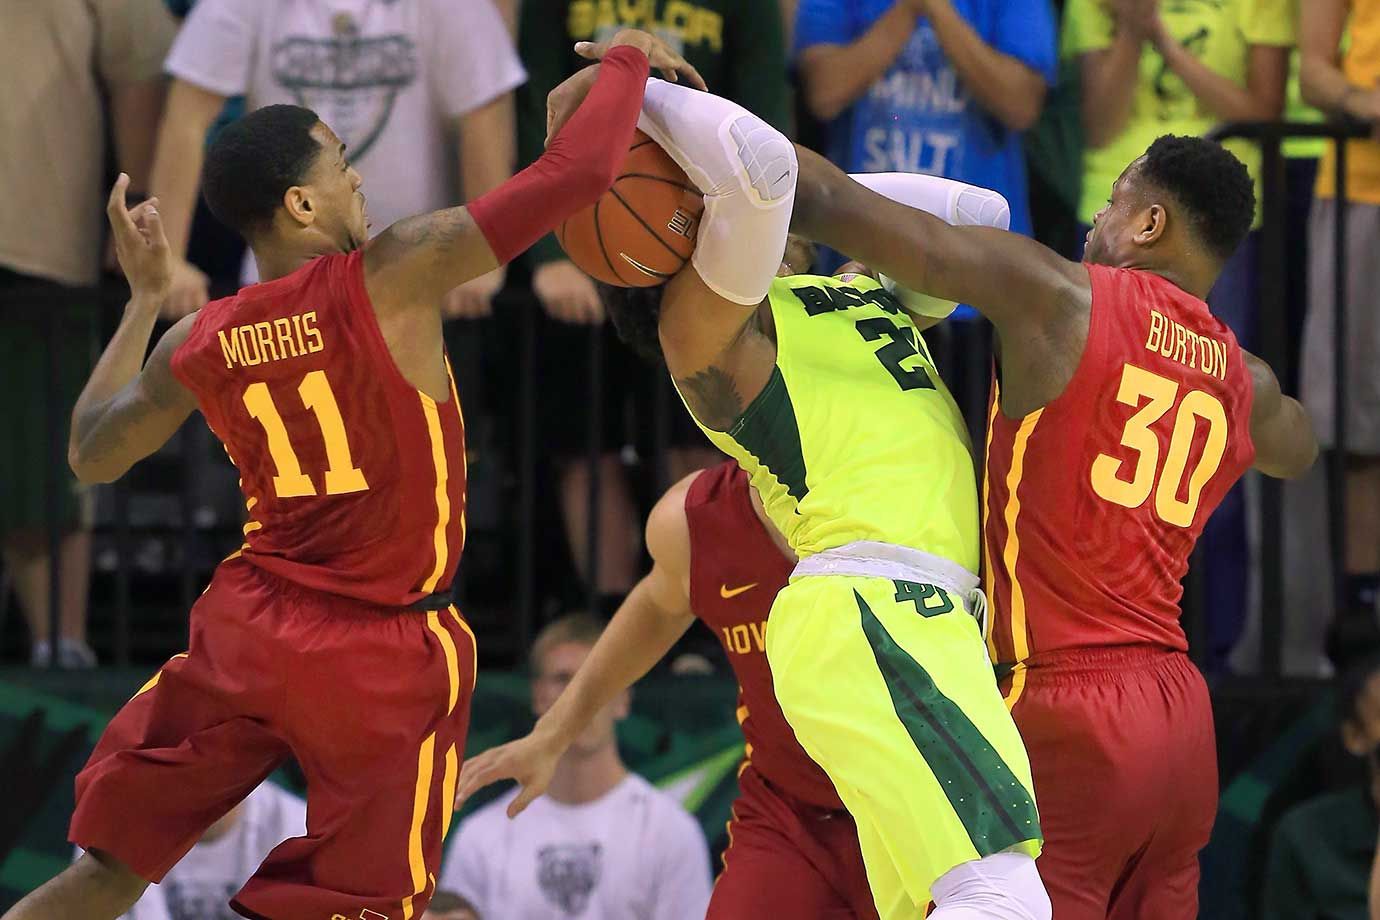 Ishmail Wainright of Baylor drives to the basket against Monte Morris and Deonte Burton of Iowa State.